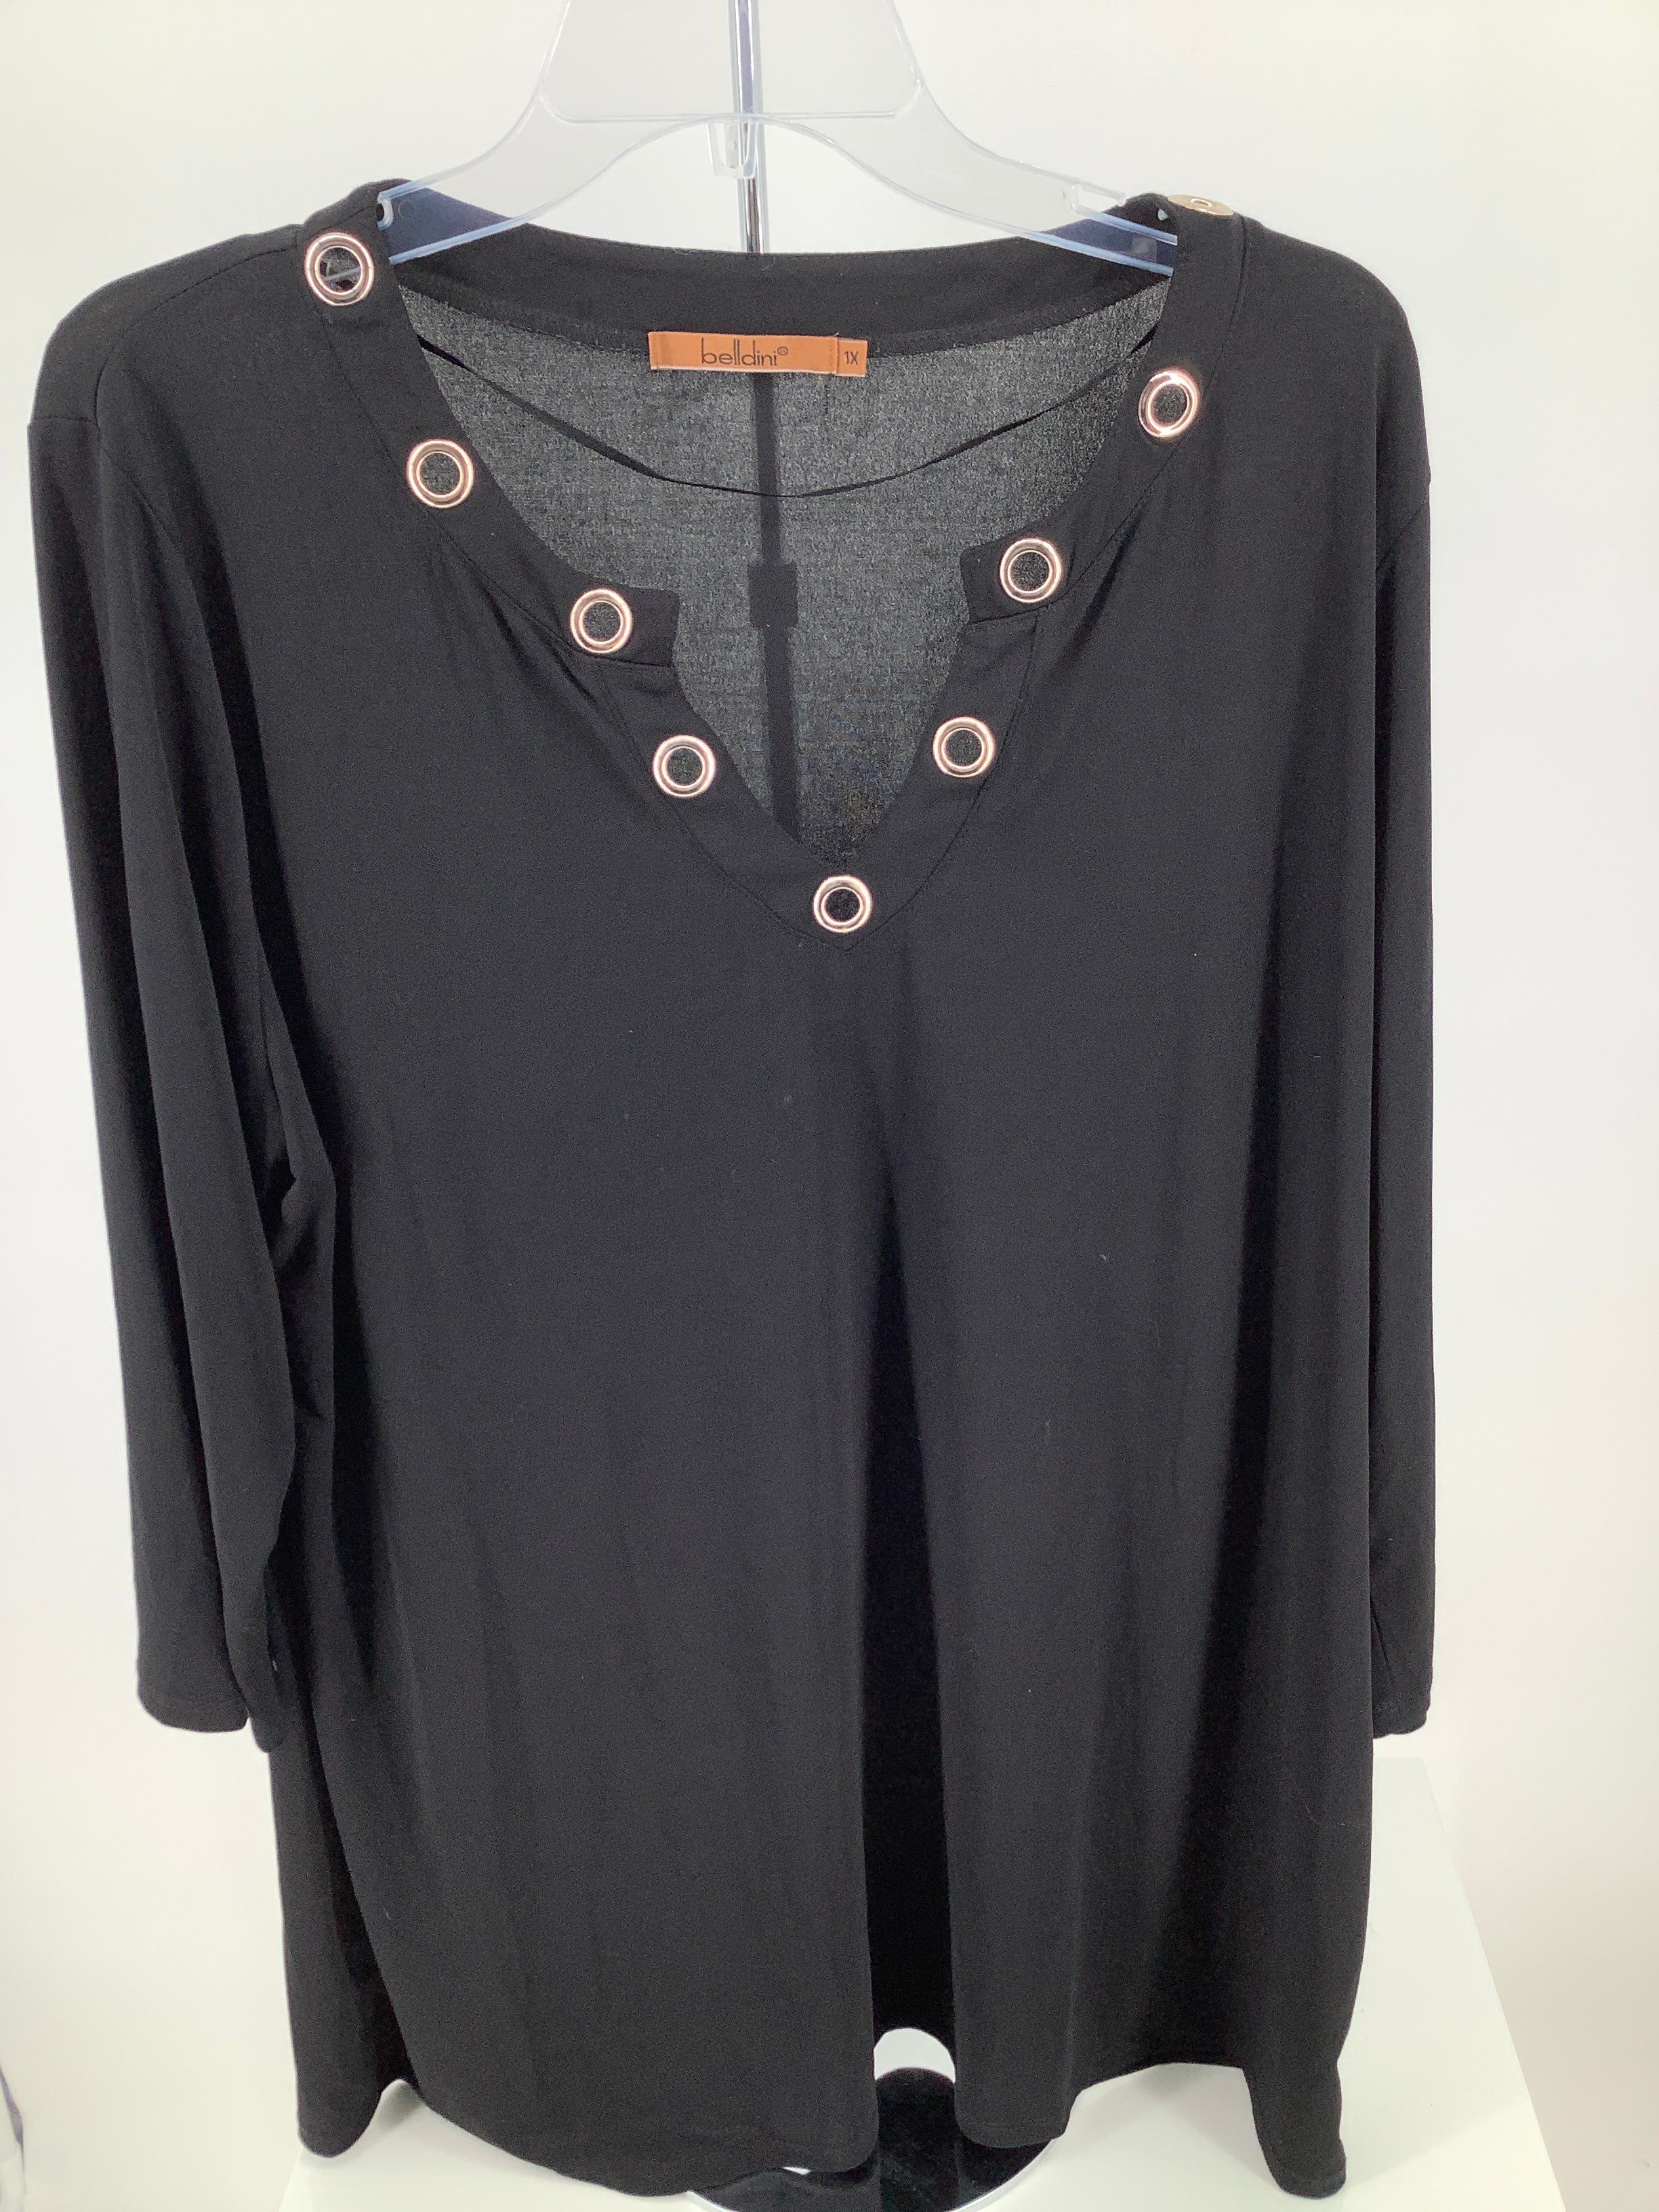 Primary Photo - brand: belldini , style: top long sleeve , color: black , size: 1x , sku: 105-3221-15657